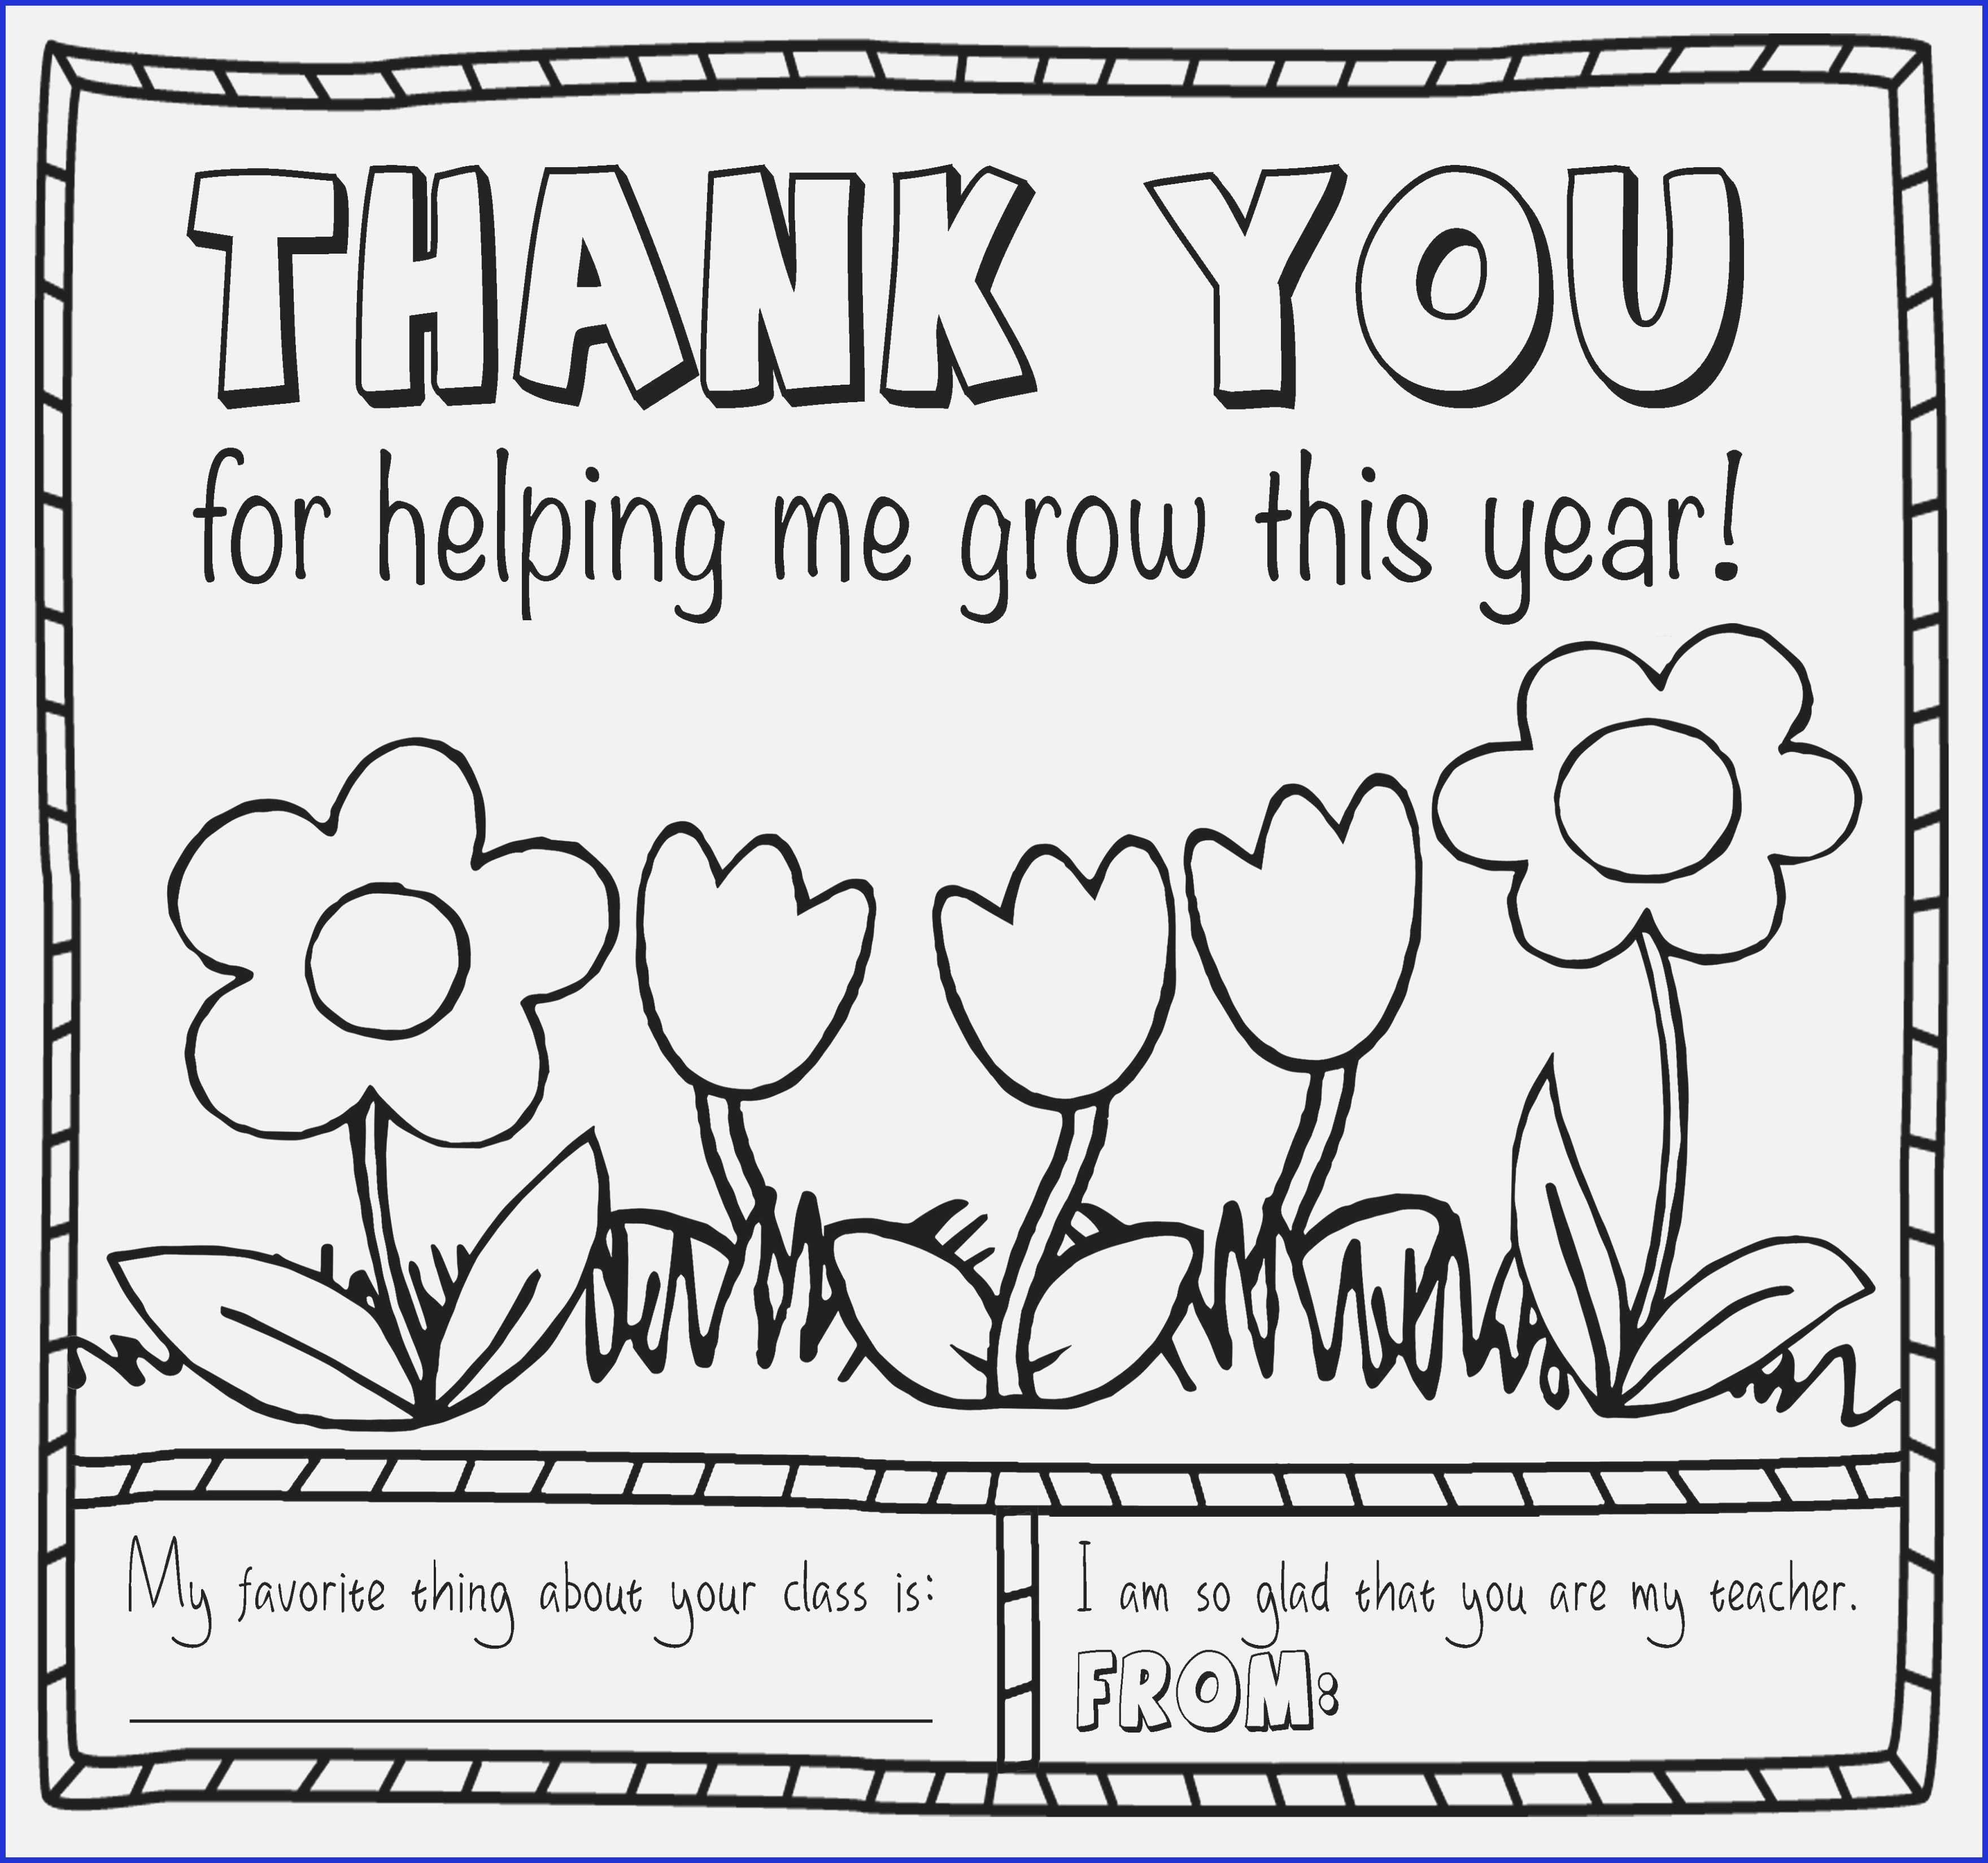 Free Printable Spring Coloring Pages Inspirational Plant Coloring Pages In 2020 Teacher Appreciation Printables Teacher Appreciation Cards Coloring Pages For Teenagers